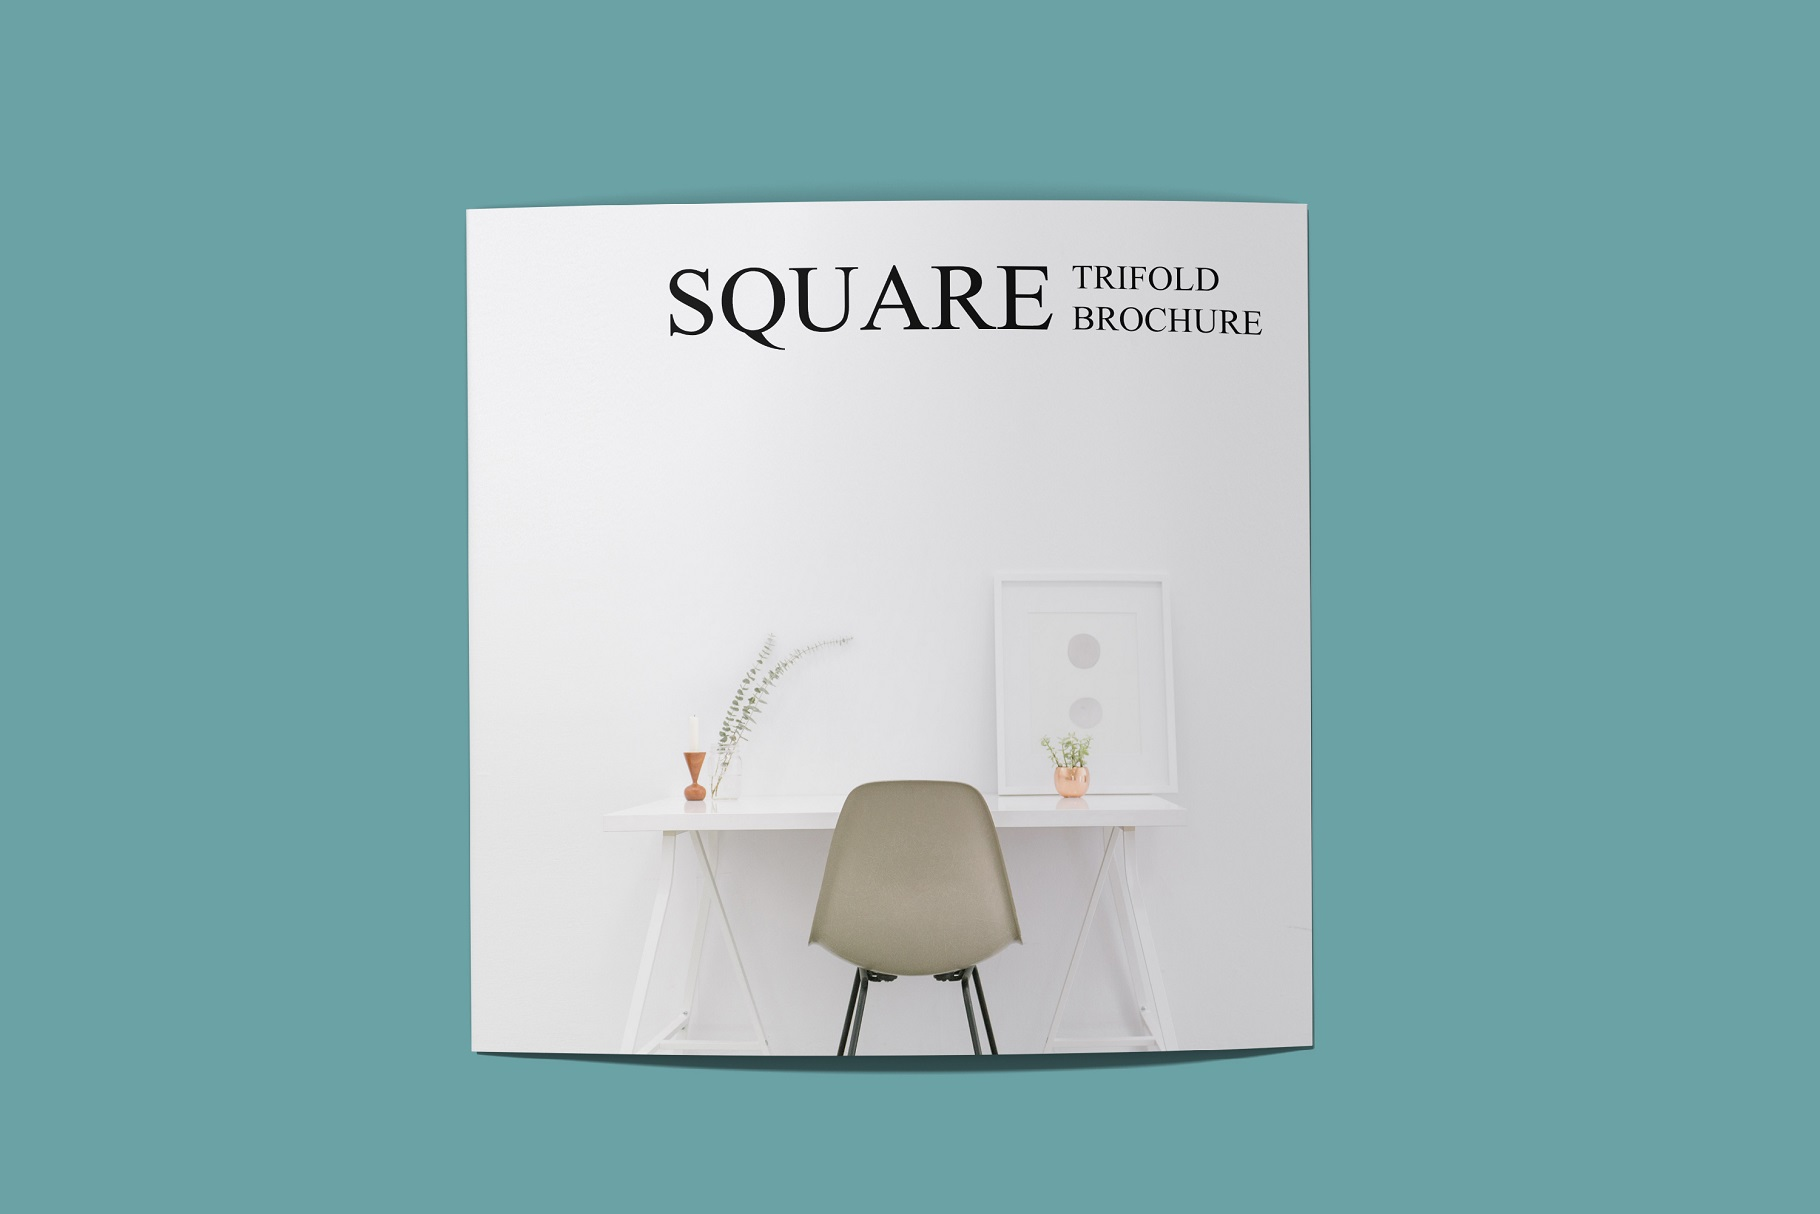 Square Trifold Brochure Mockup example image 9